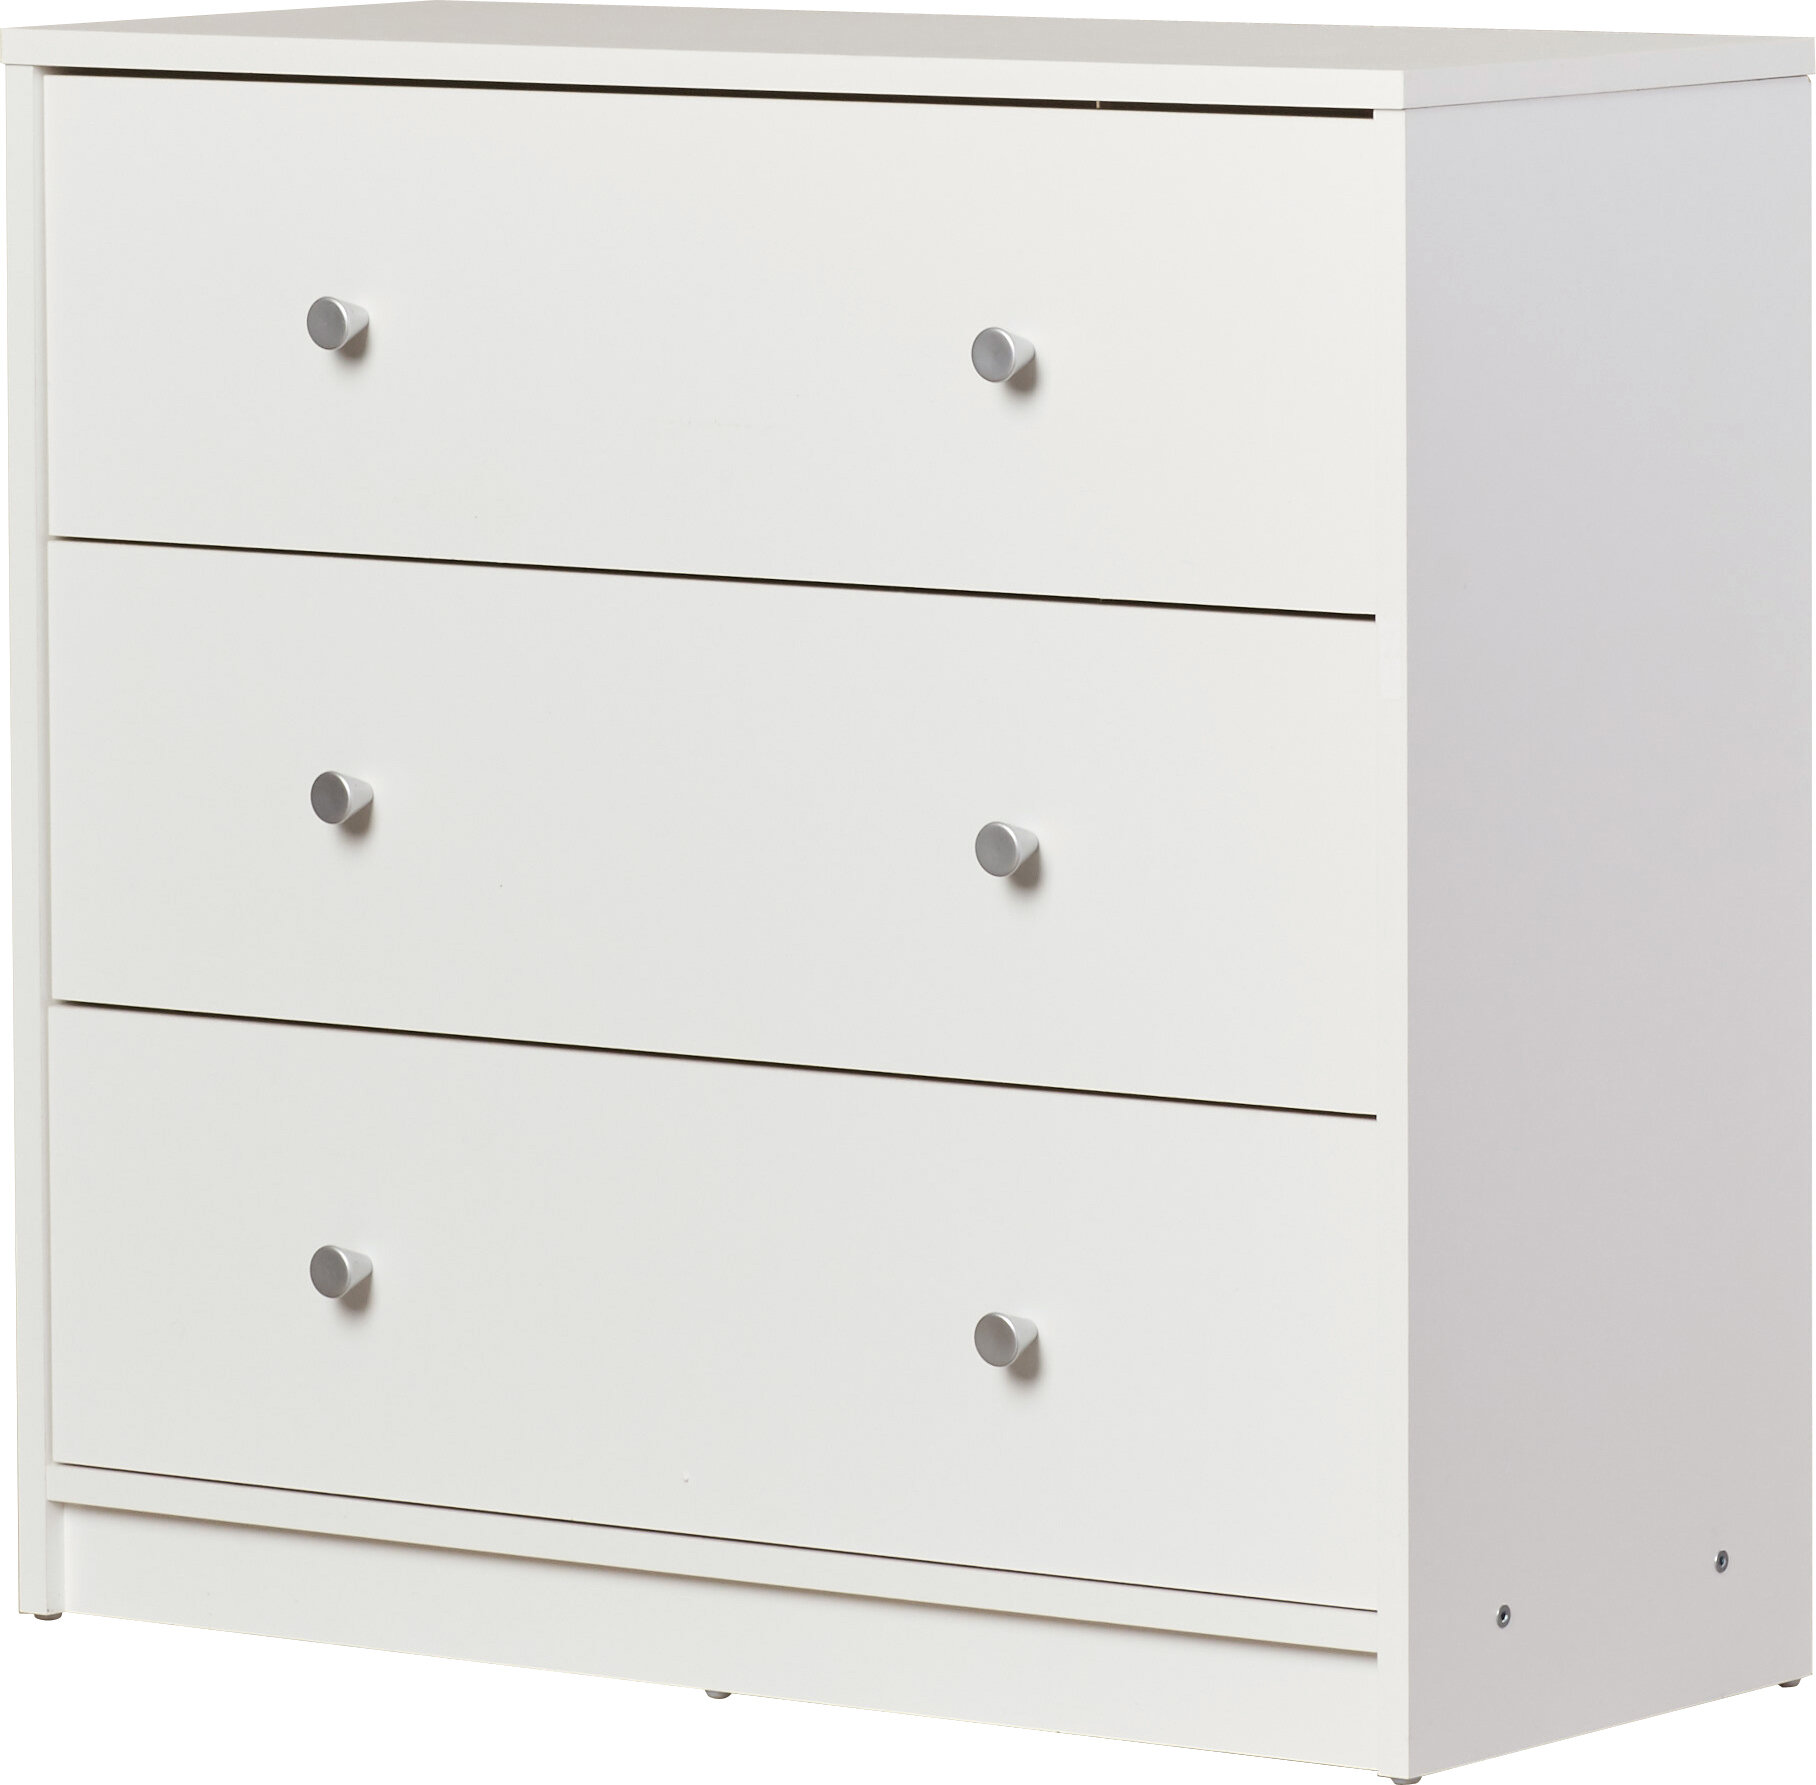 drawers for of bedroom dressers malm chest tall drawer low narrow black wide sale furniture ft white dresser